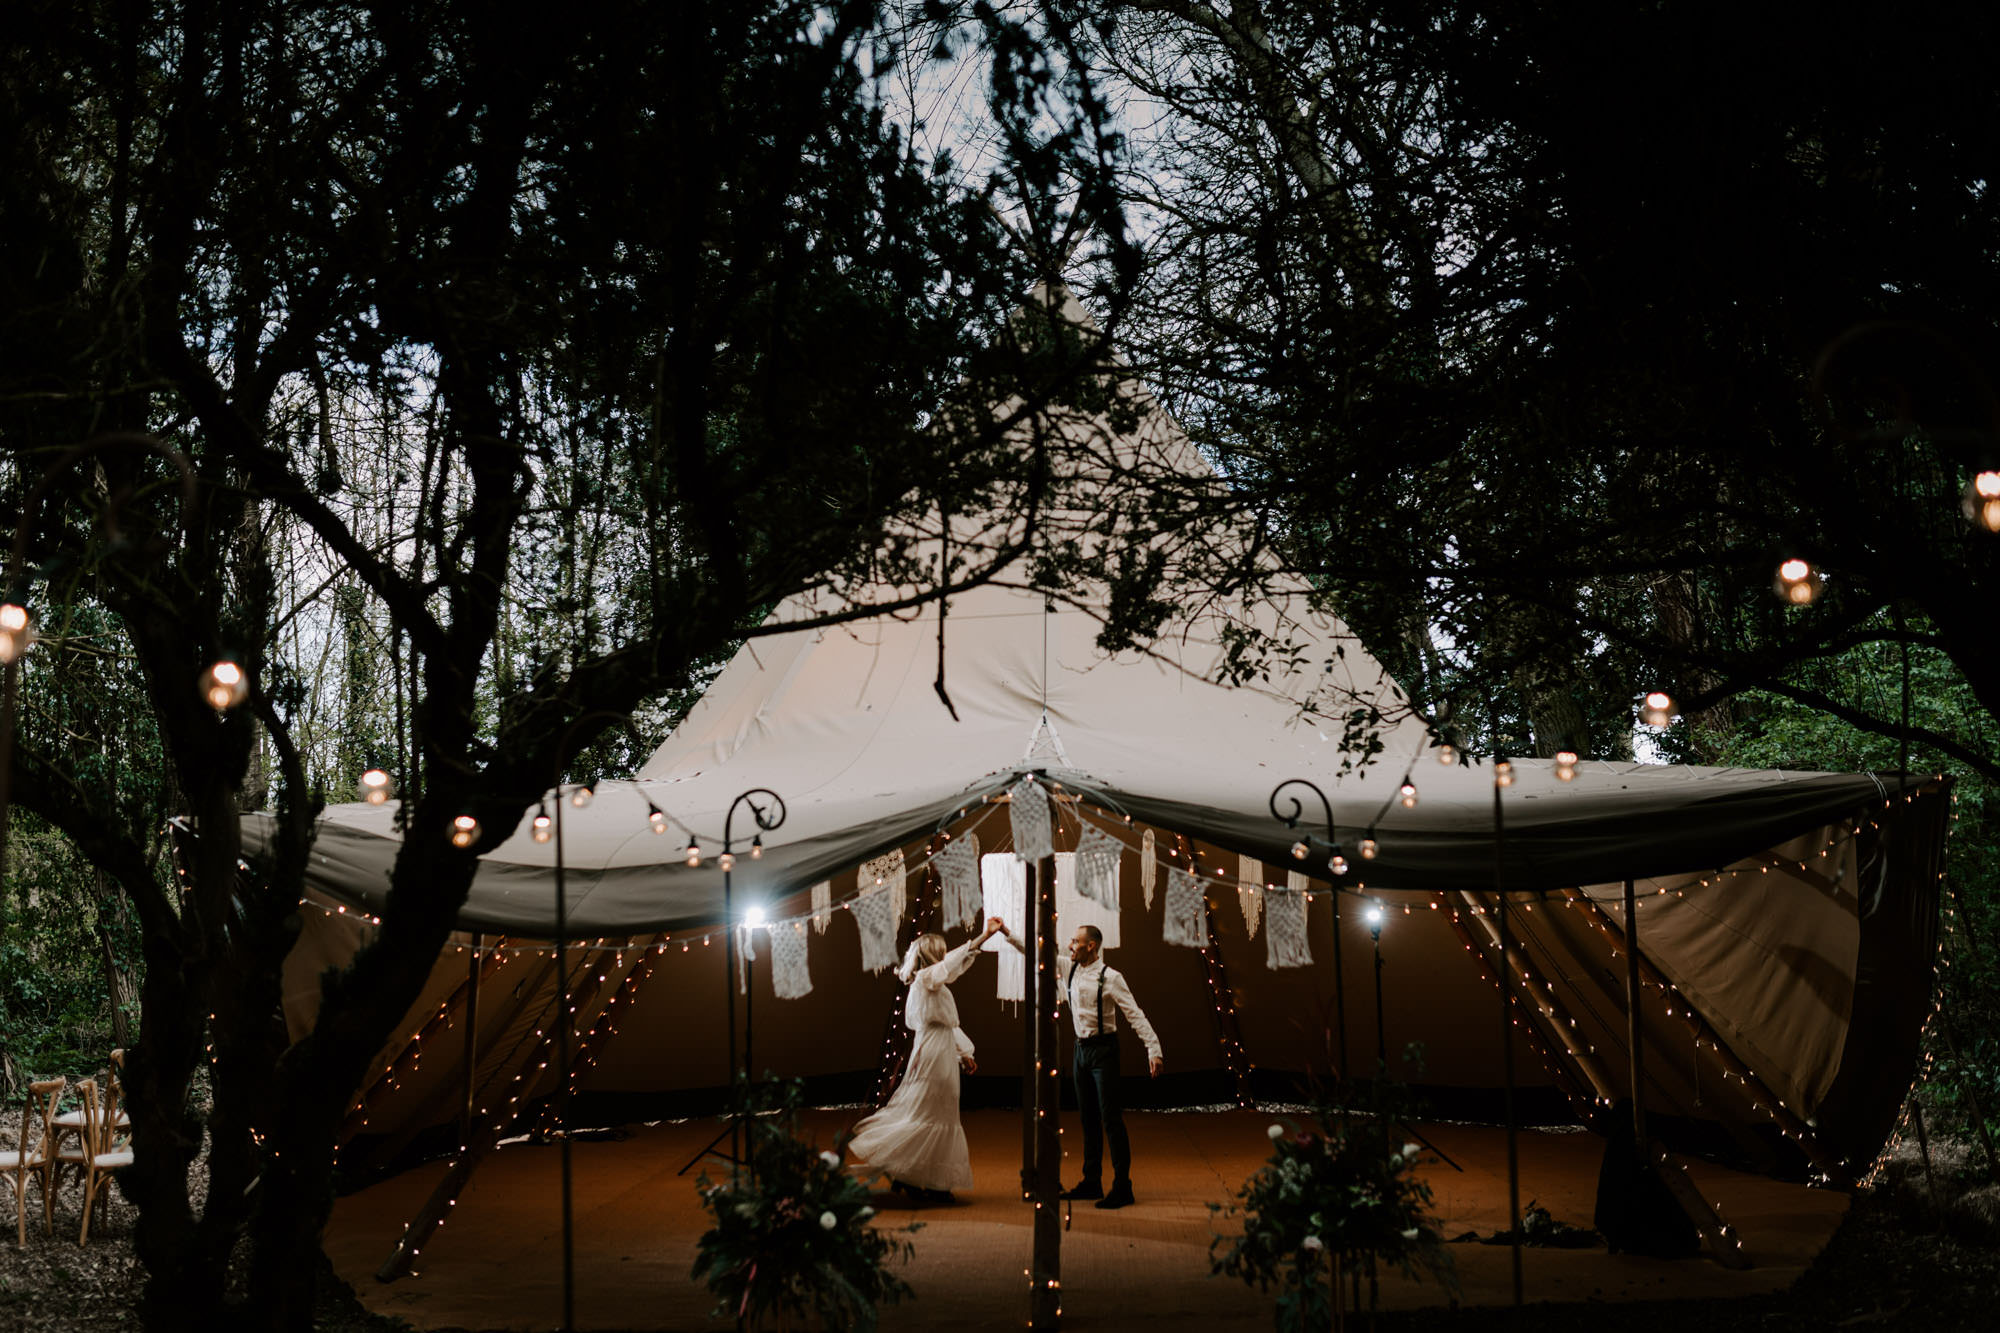 Serentipi - Yorkshire Wedding Tipi Hire